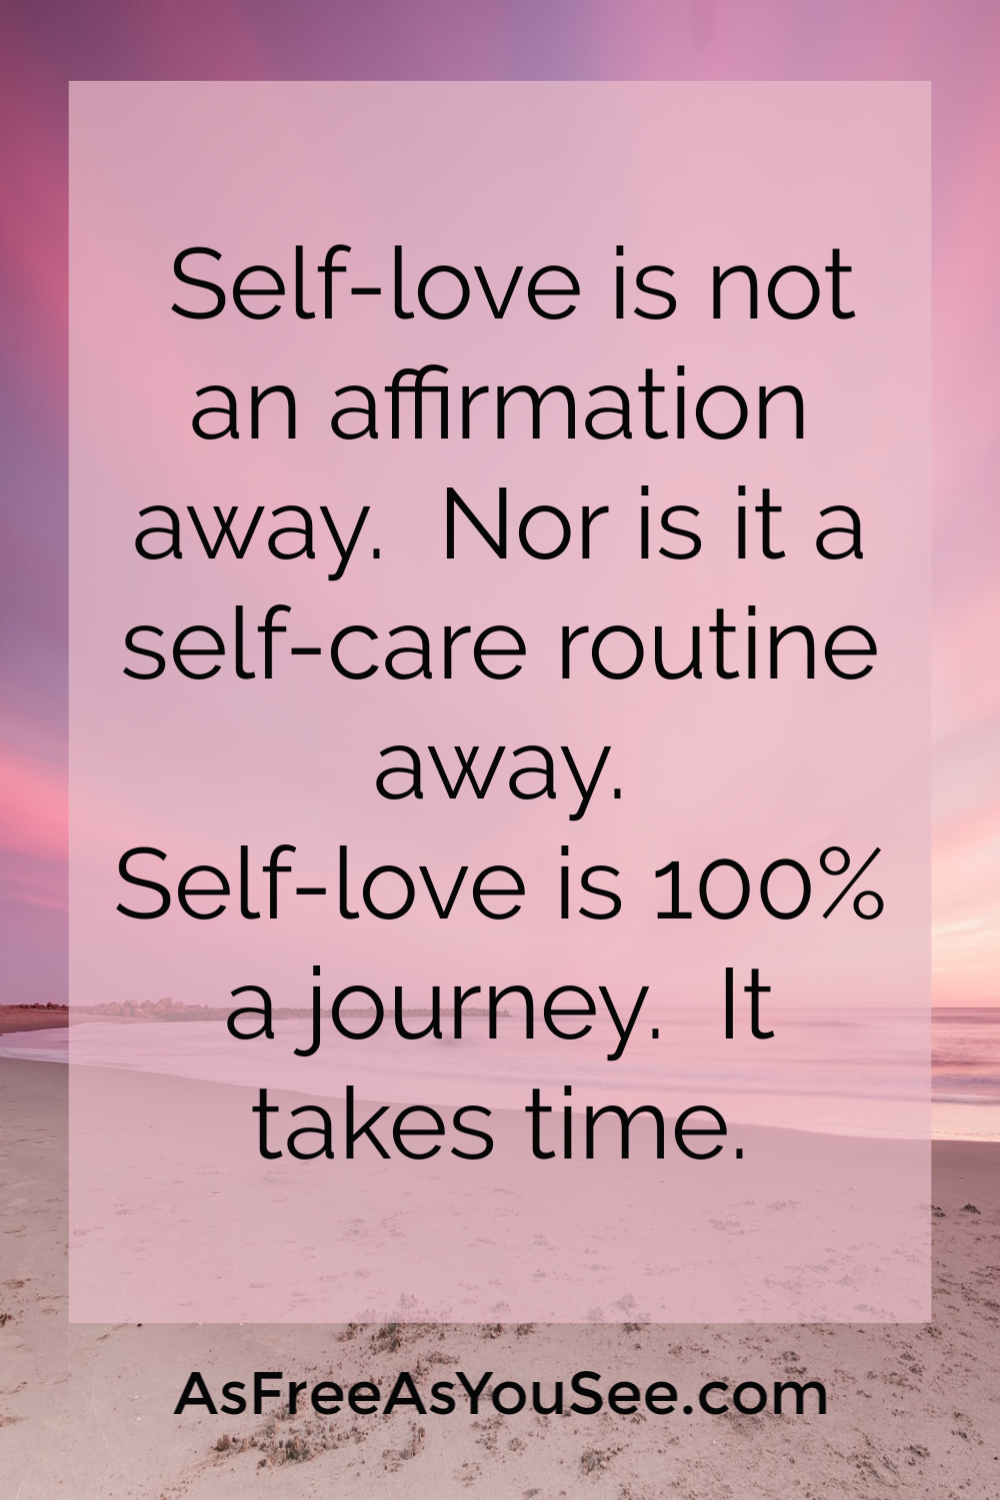 13 Divine Secrets to loving yourself provides 13 hacks on how you can start accepting yourself and growing to loving yourself.  This blog provides insights on the journey of self-love and talks about real things that no one else mentioning about self-love.